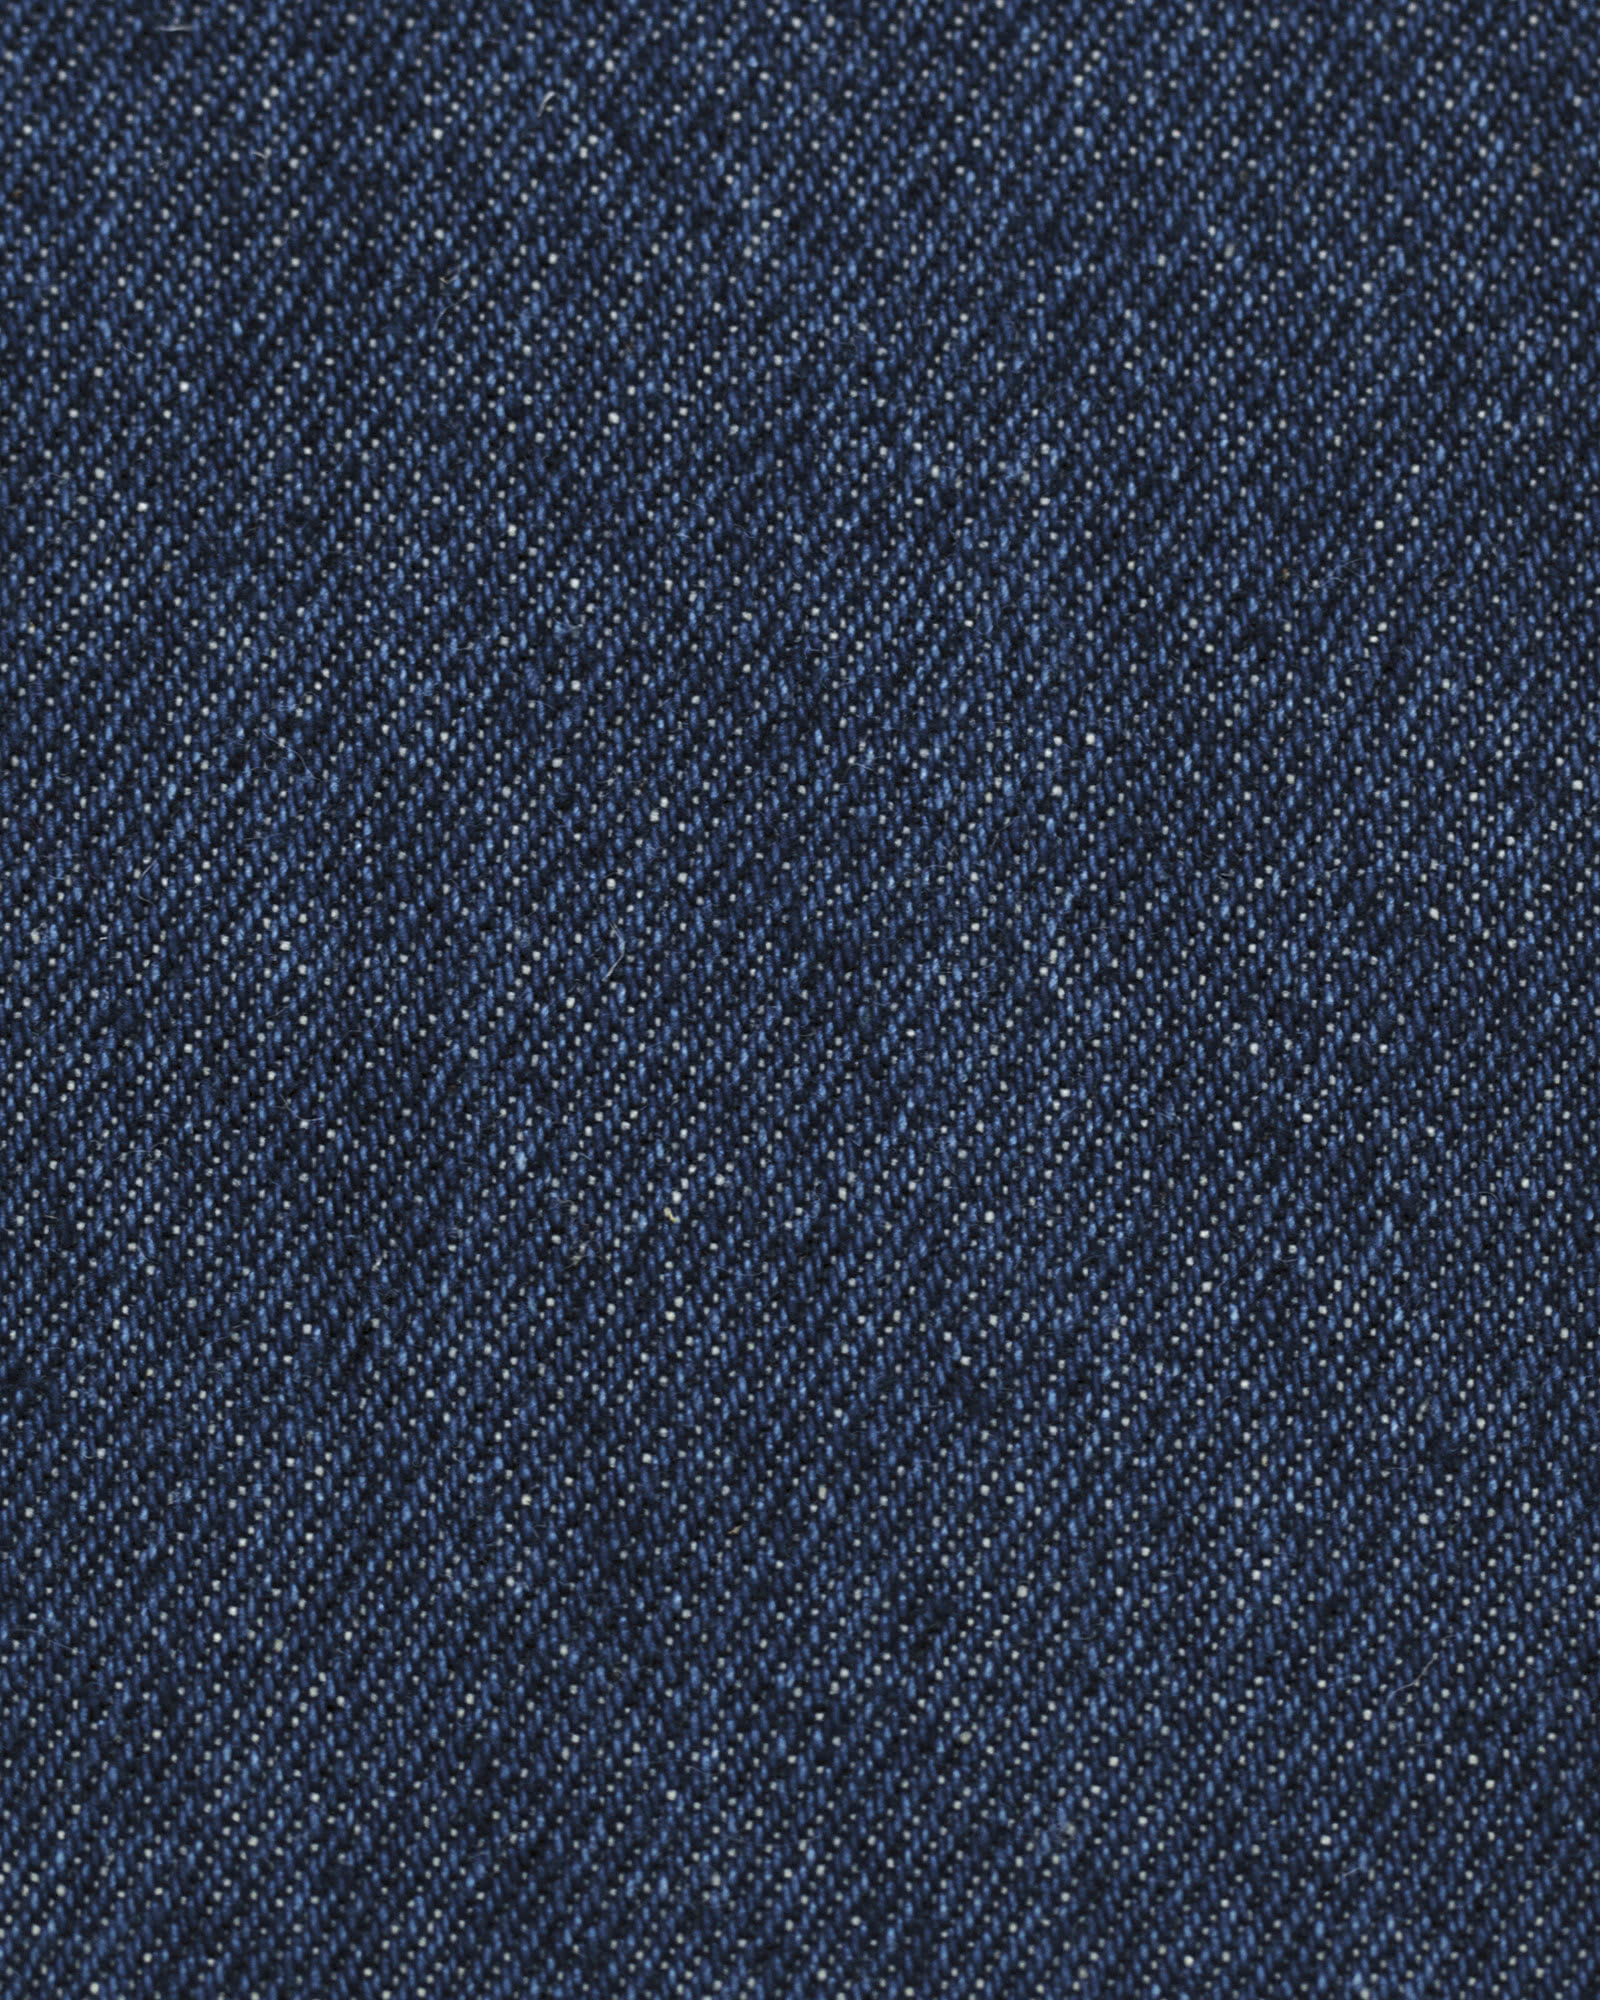 Fabric by the Yard – Cotton Denim, Navy